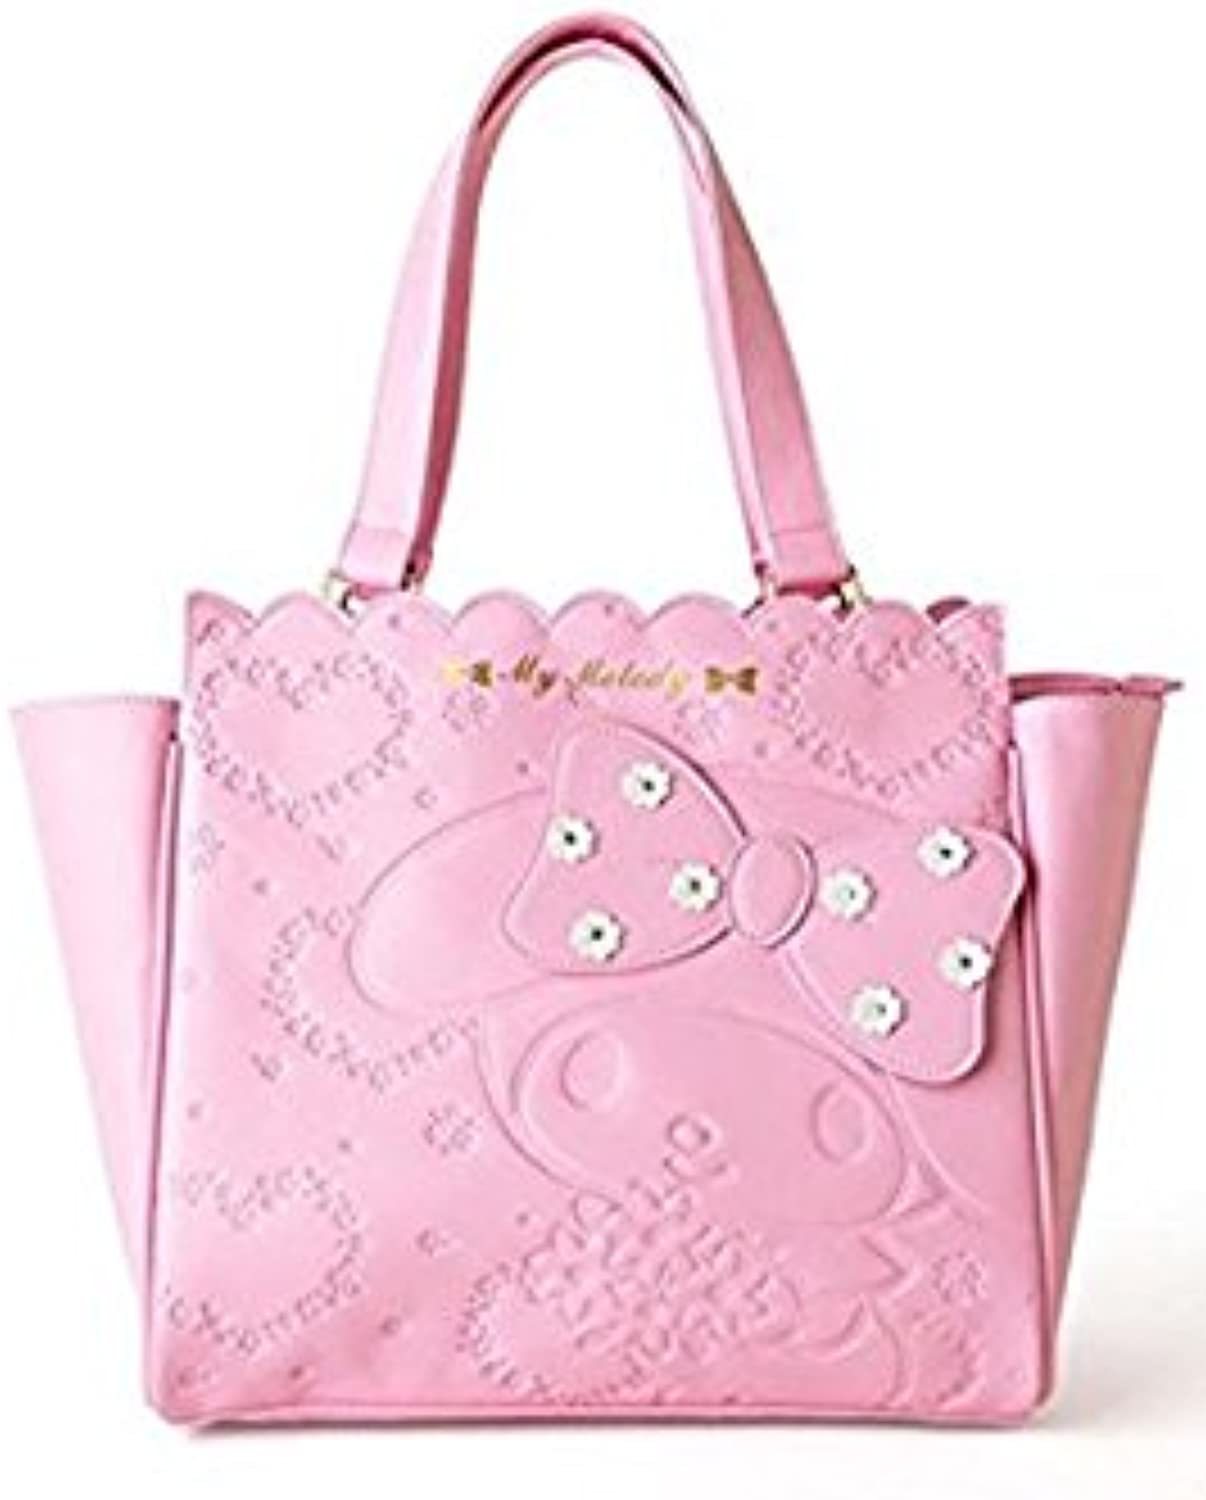 Marushin Sanrio My Melody Embossed Tote Bag 863556 863556